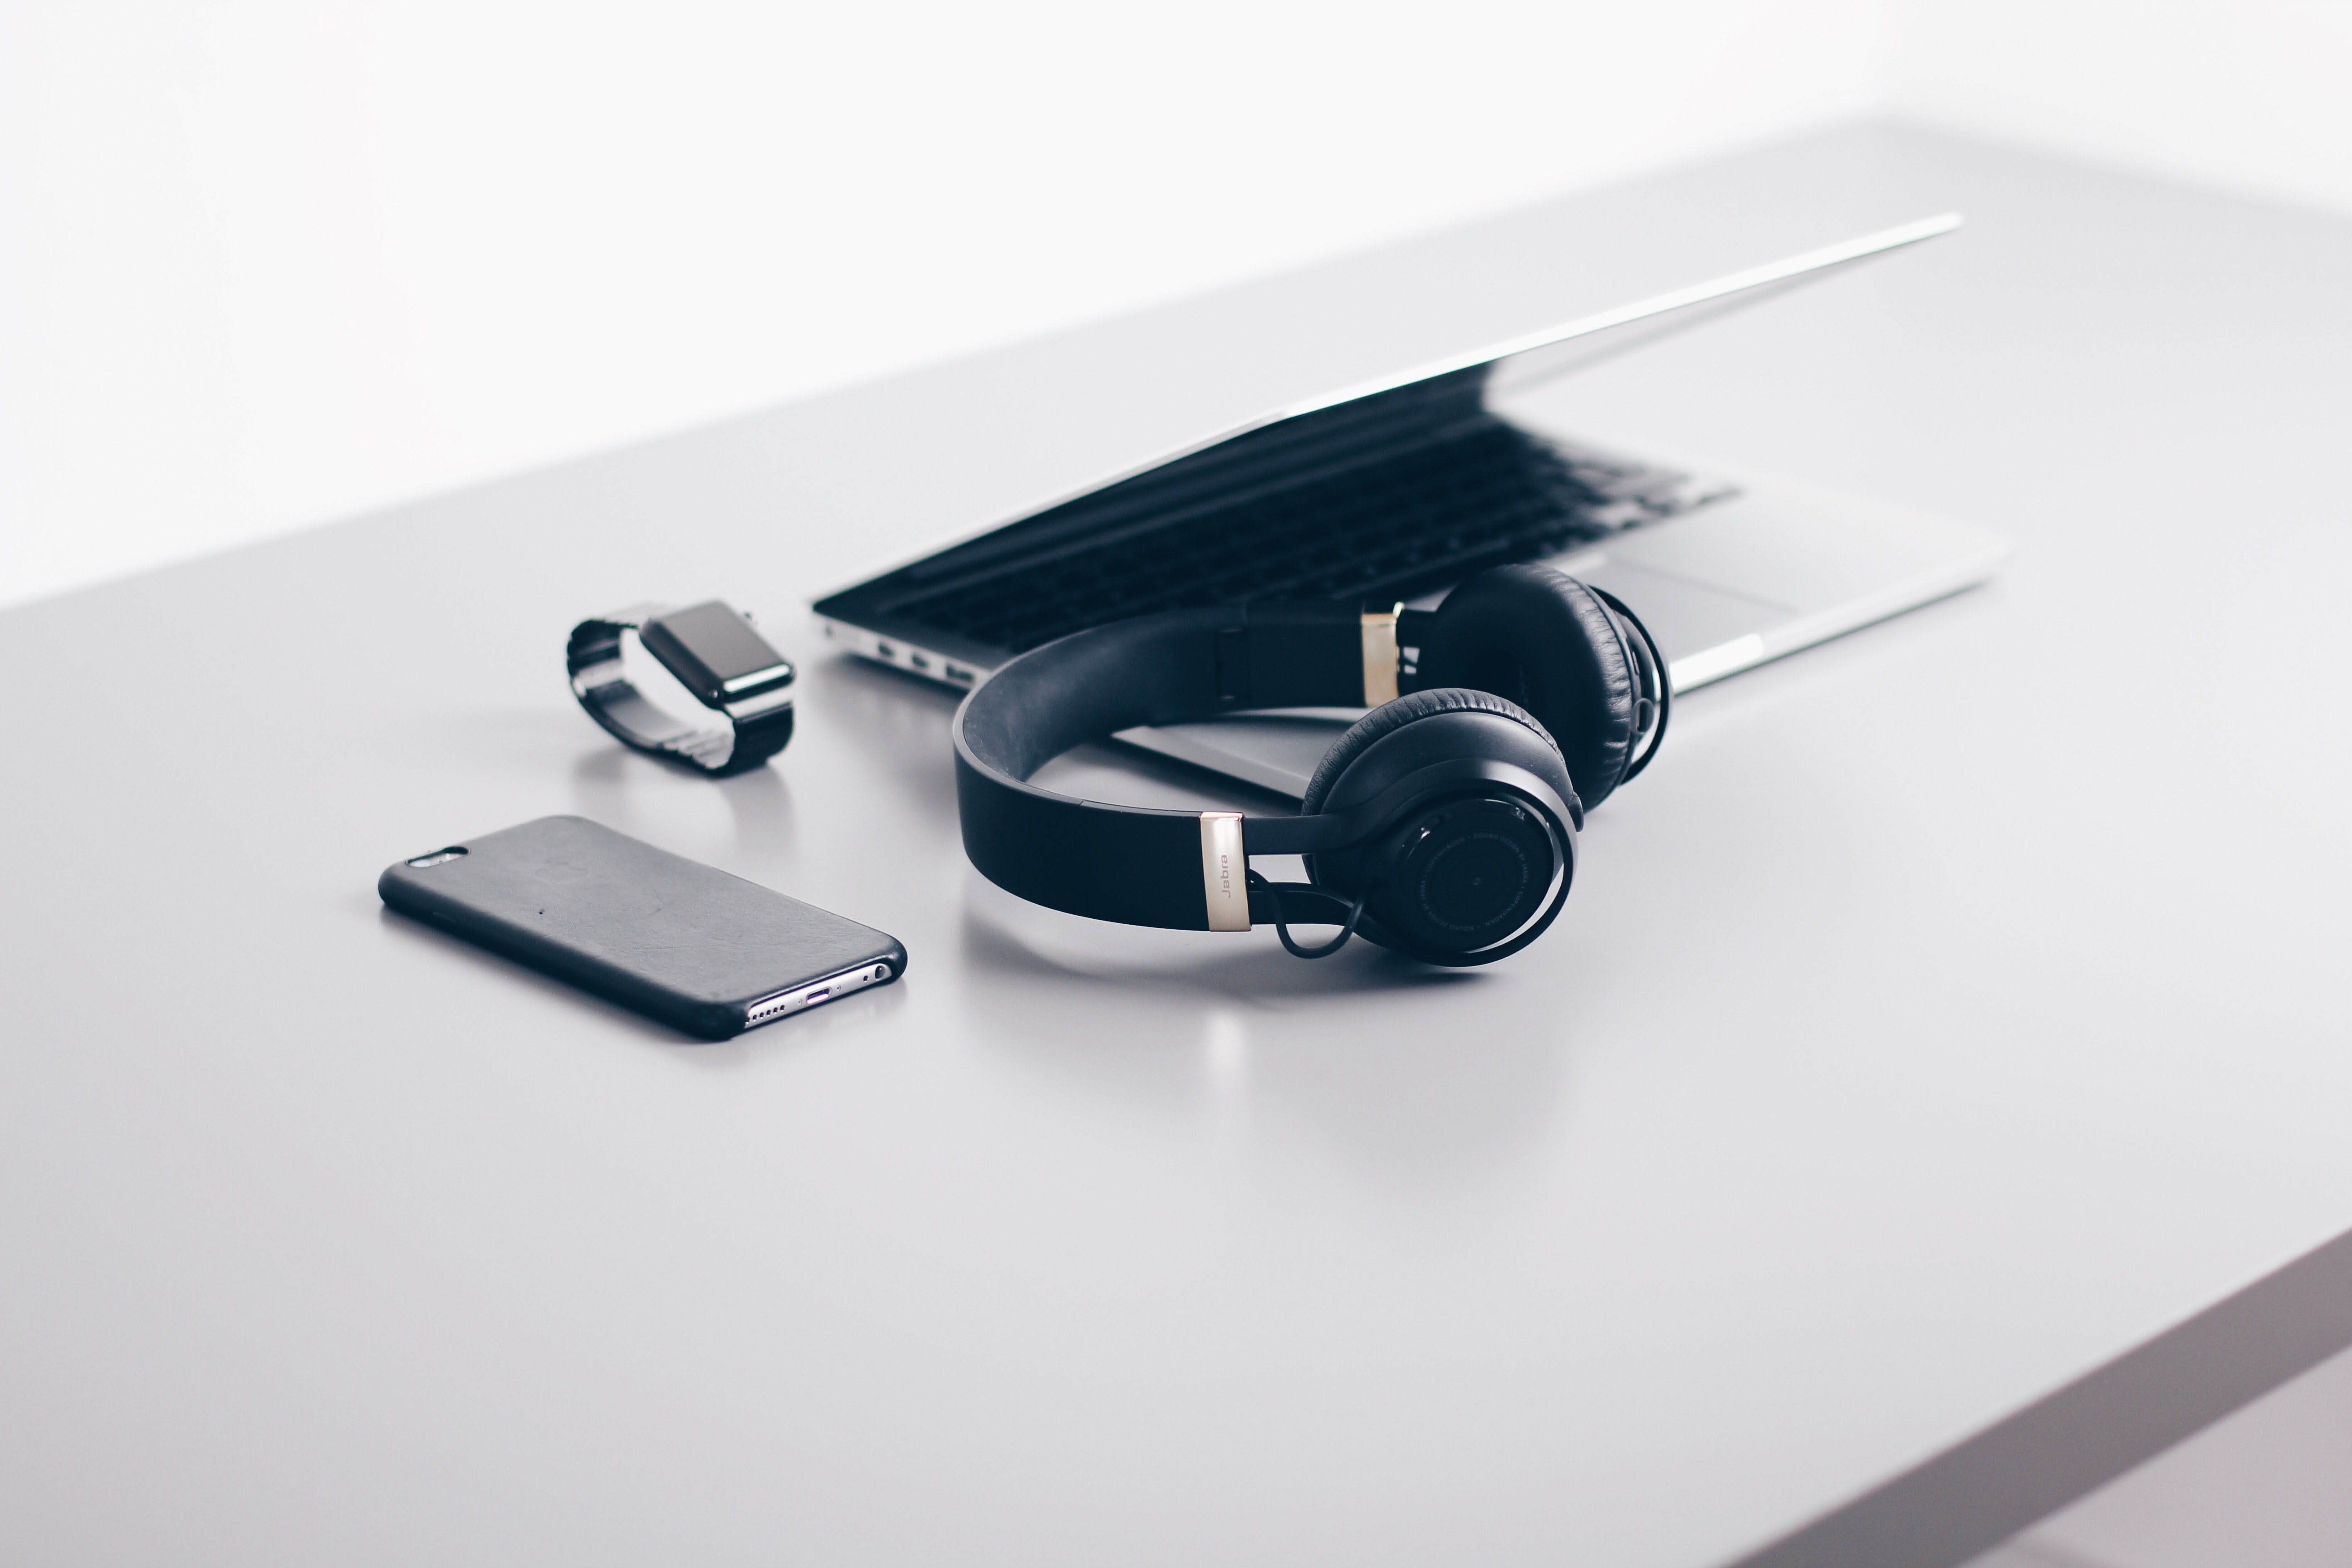 Black cordless headphones beside closed black laptop computer and smartphone; image by Christopher Gower, via Unsplash.com.